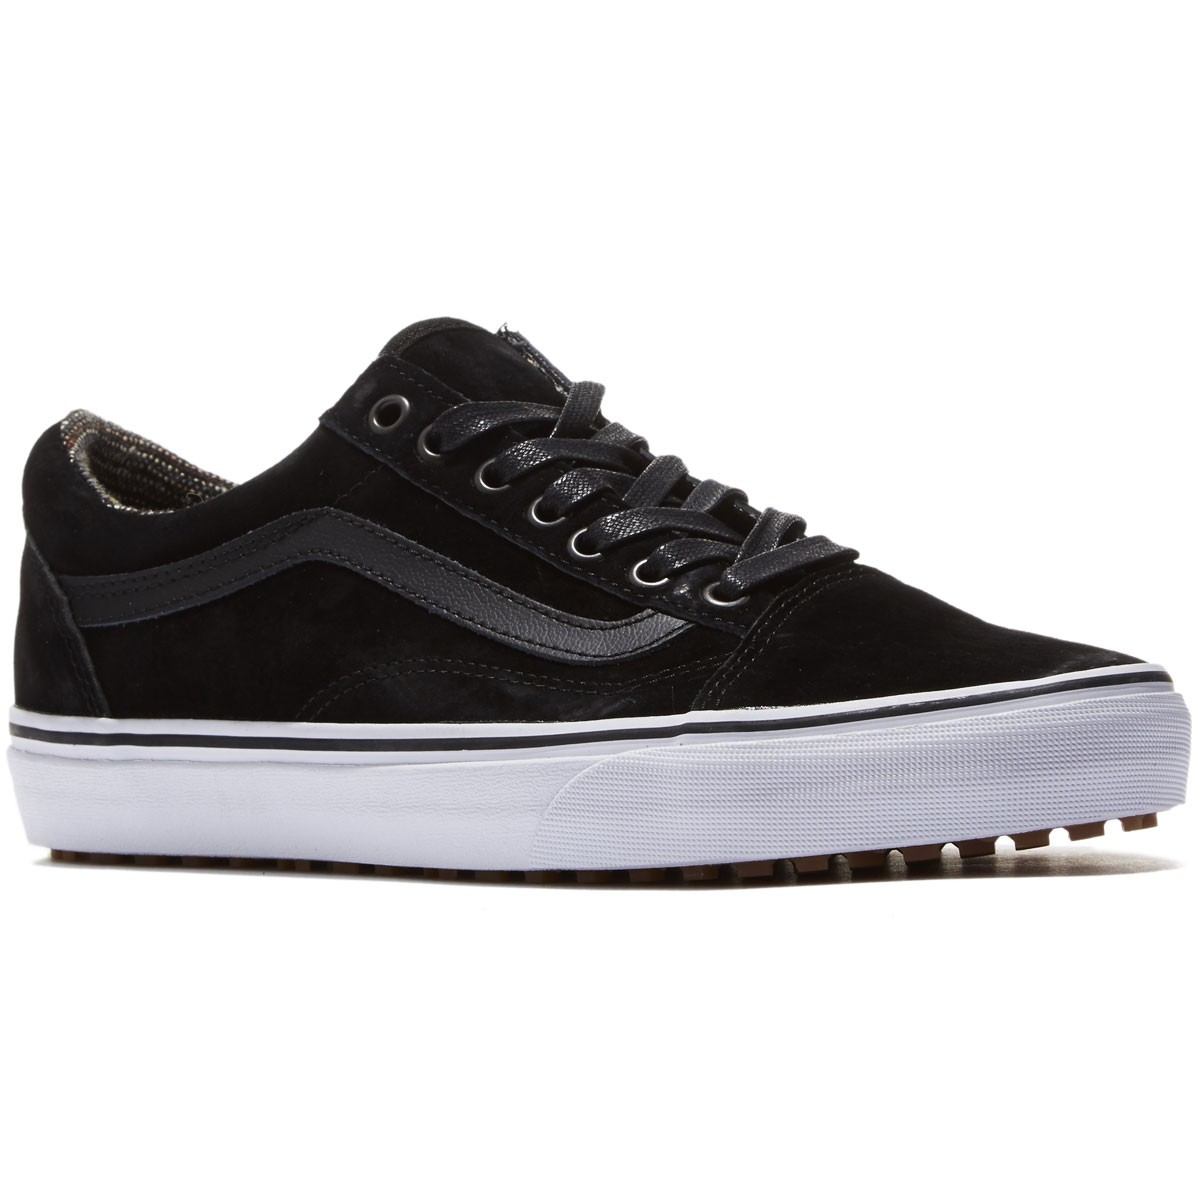 vans old skool mte shoes. Black Bedroom Furniture Sets. Home Design Ideas